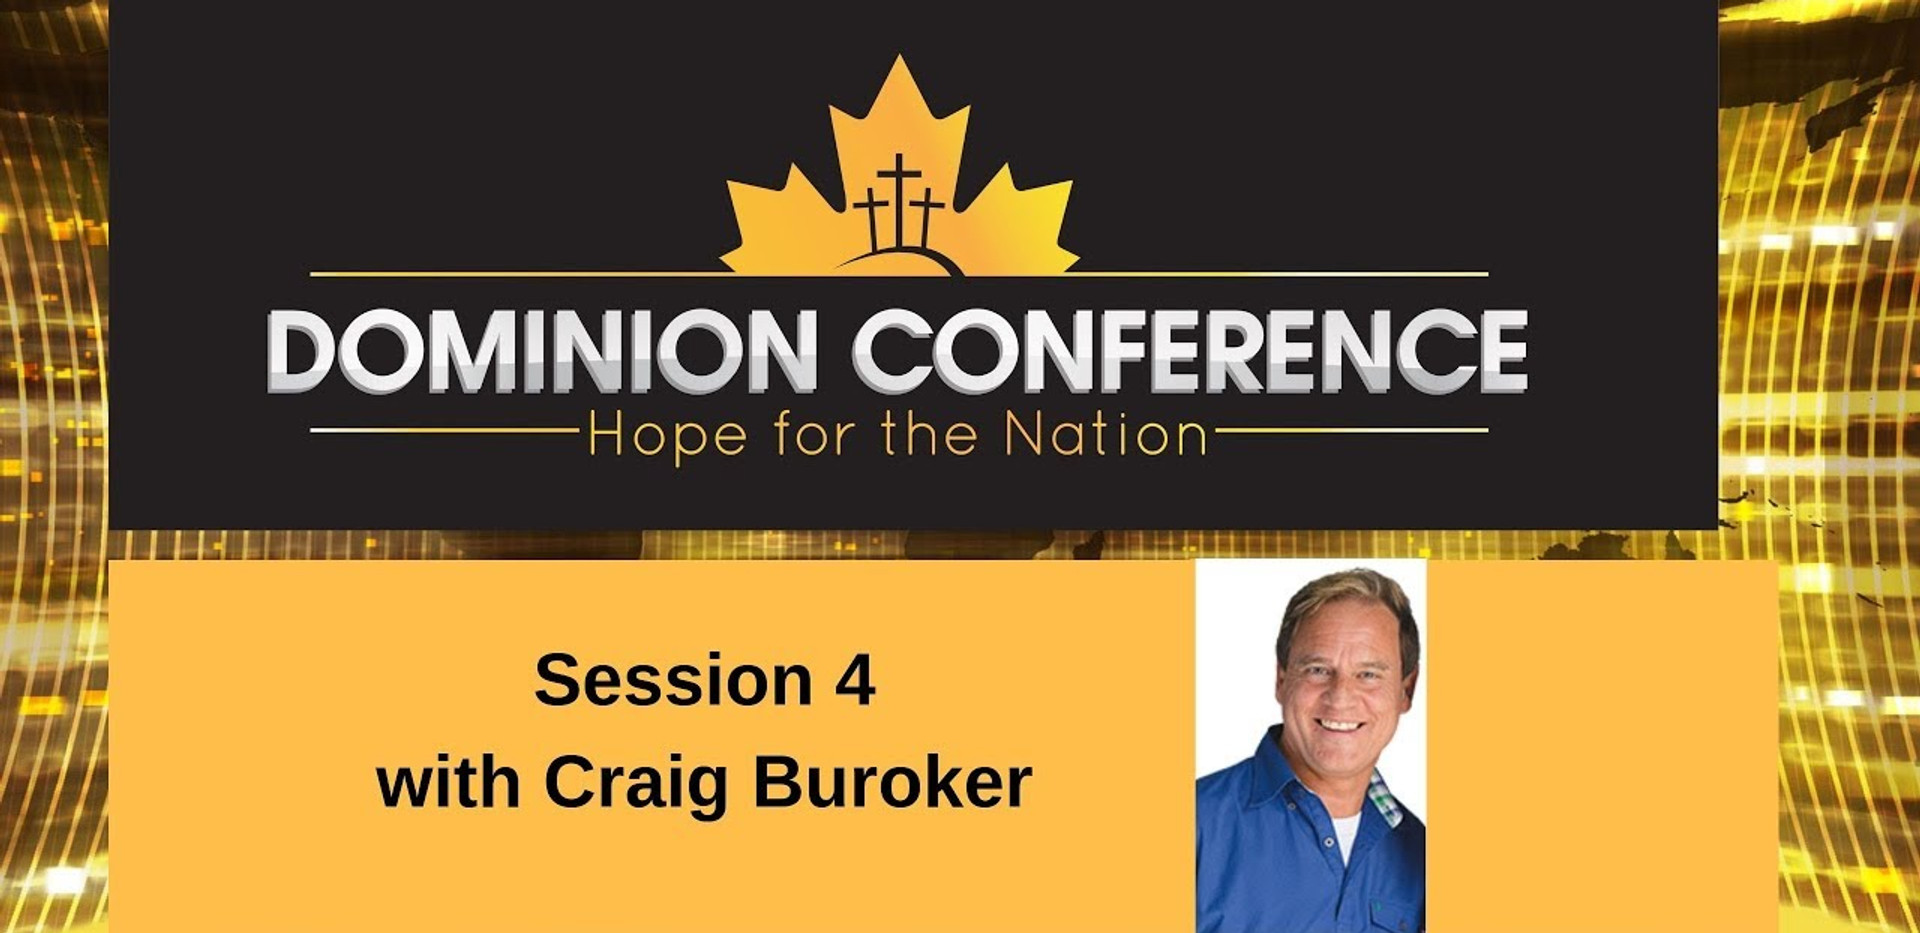 Dominion Conference Lethbridge 2019 | Session Four | Saturday, June 29th 2019 | Craig Buroker